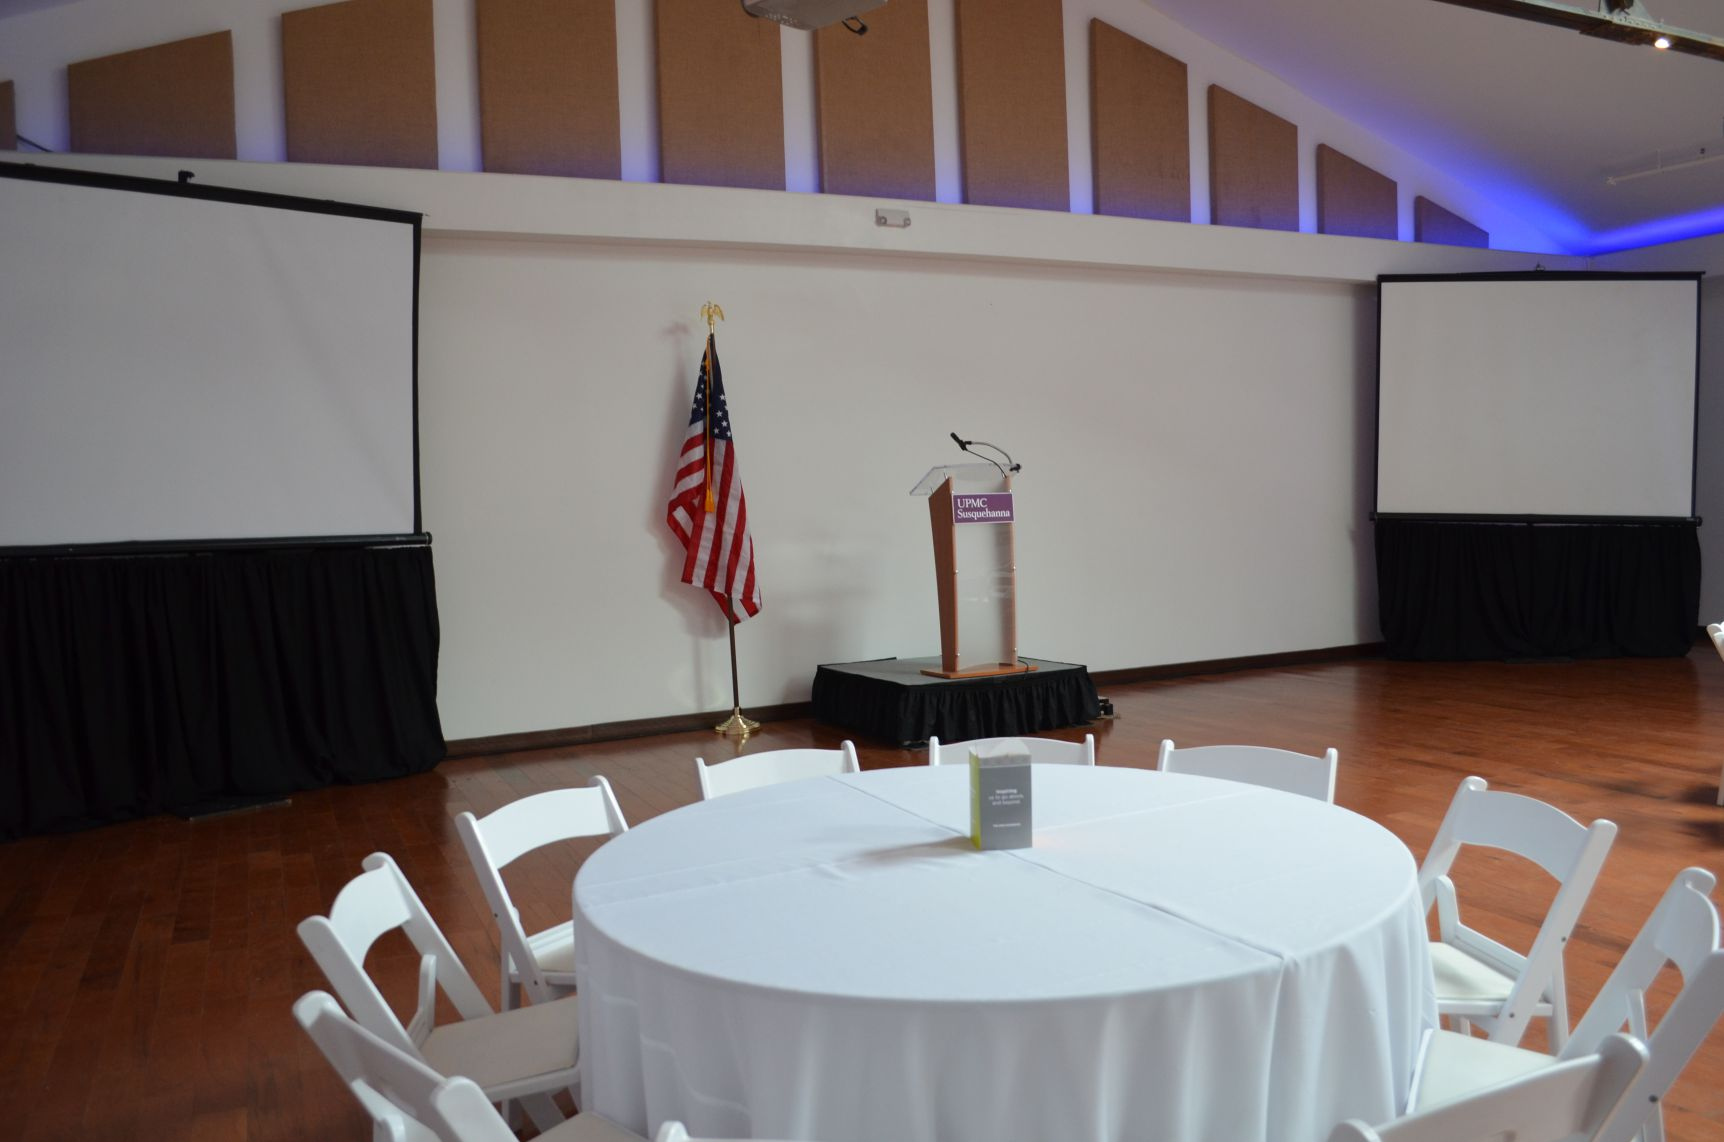 corporate event projector screens